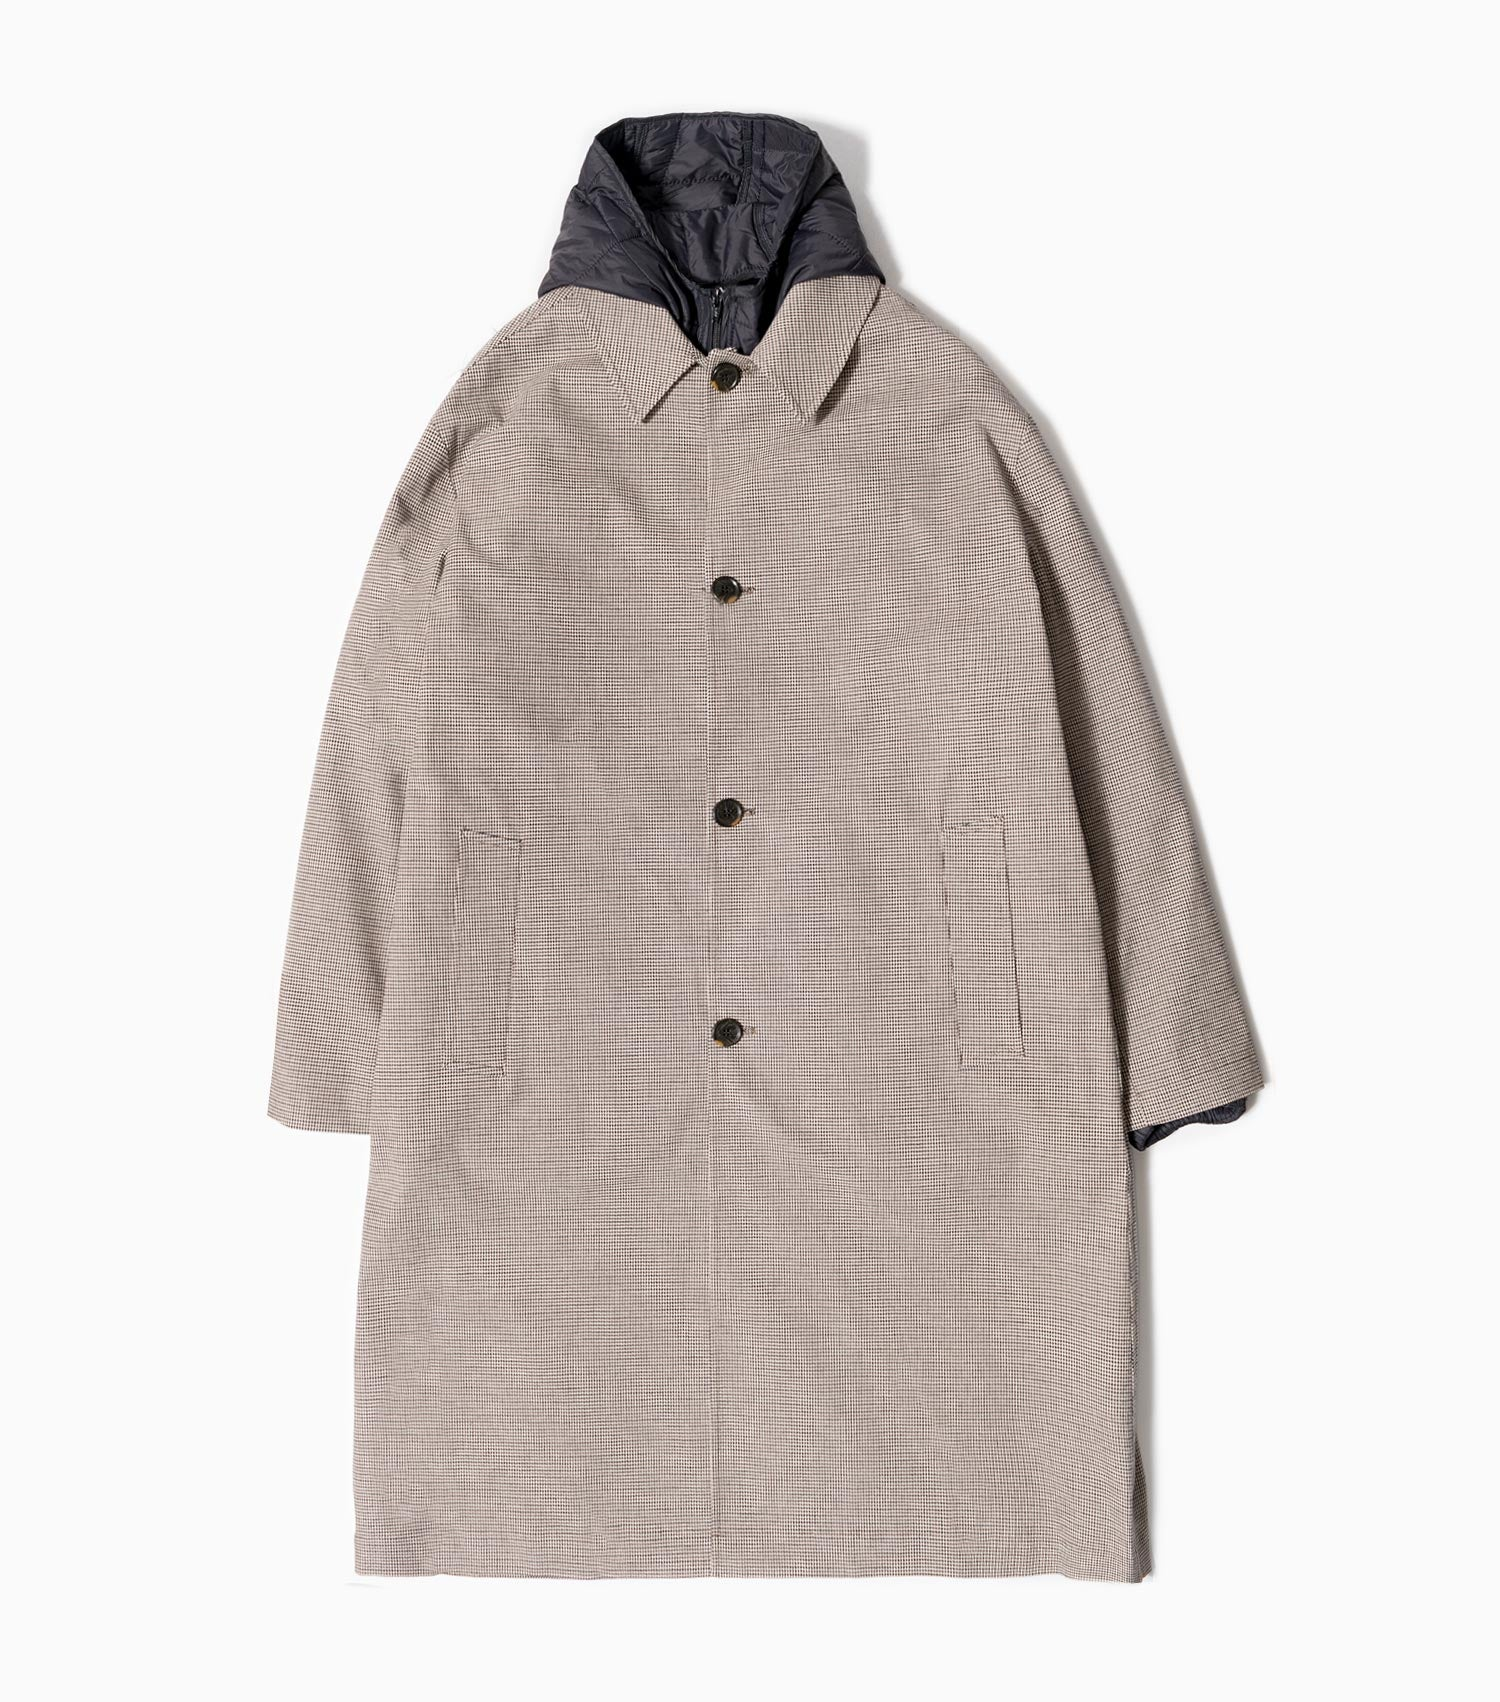 mfpen Isolation Oversized Coat - Beige Check